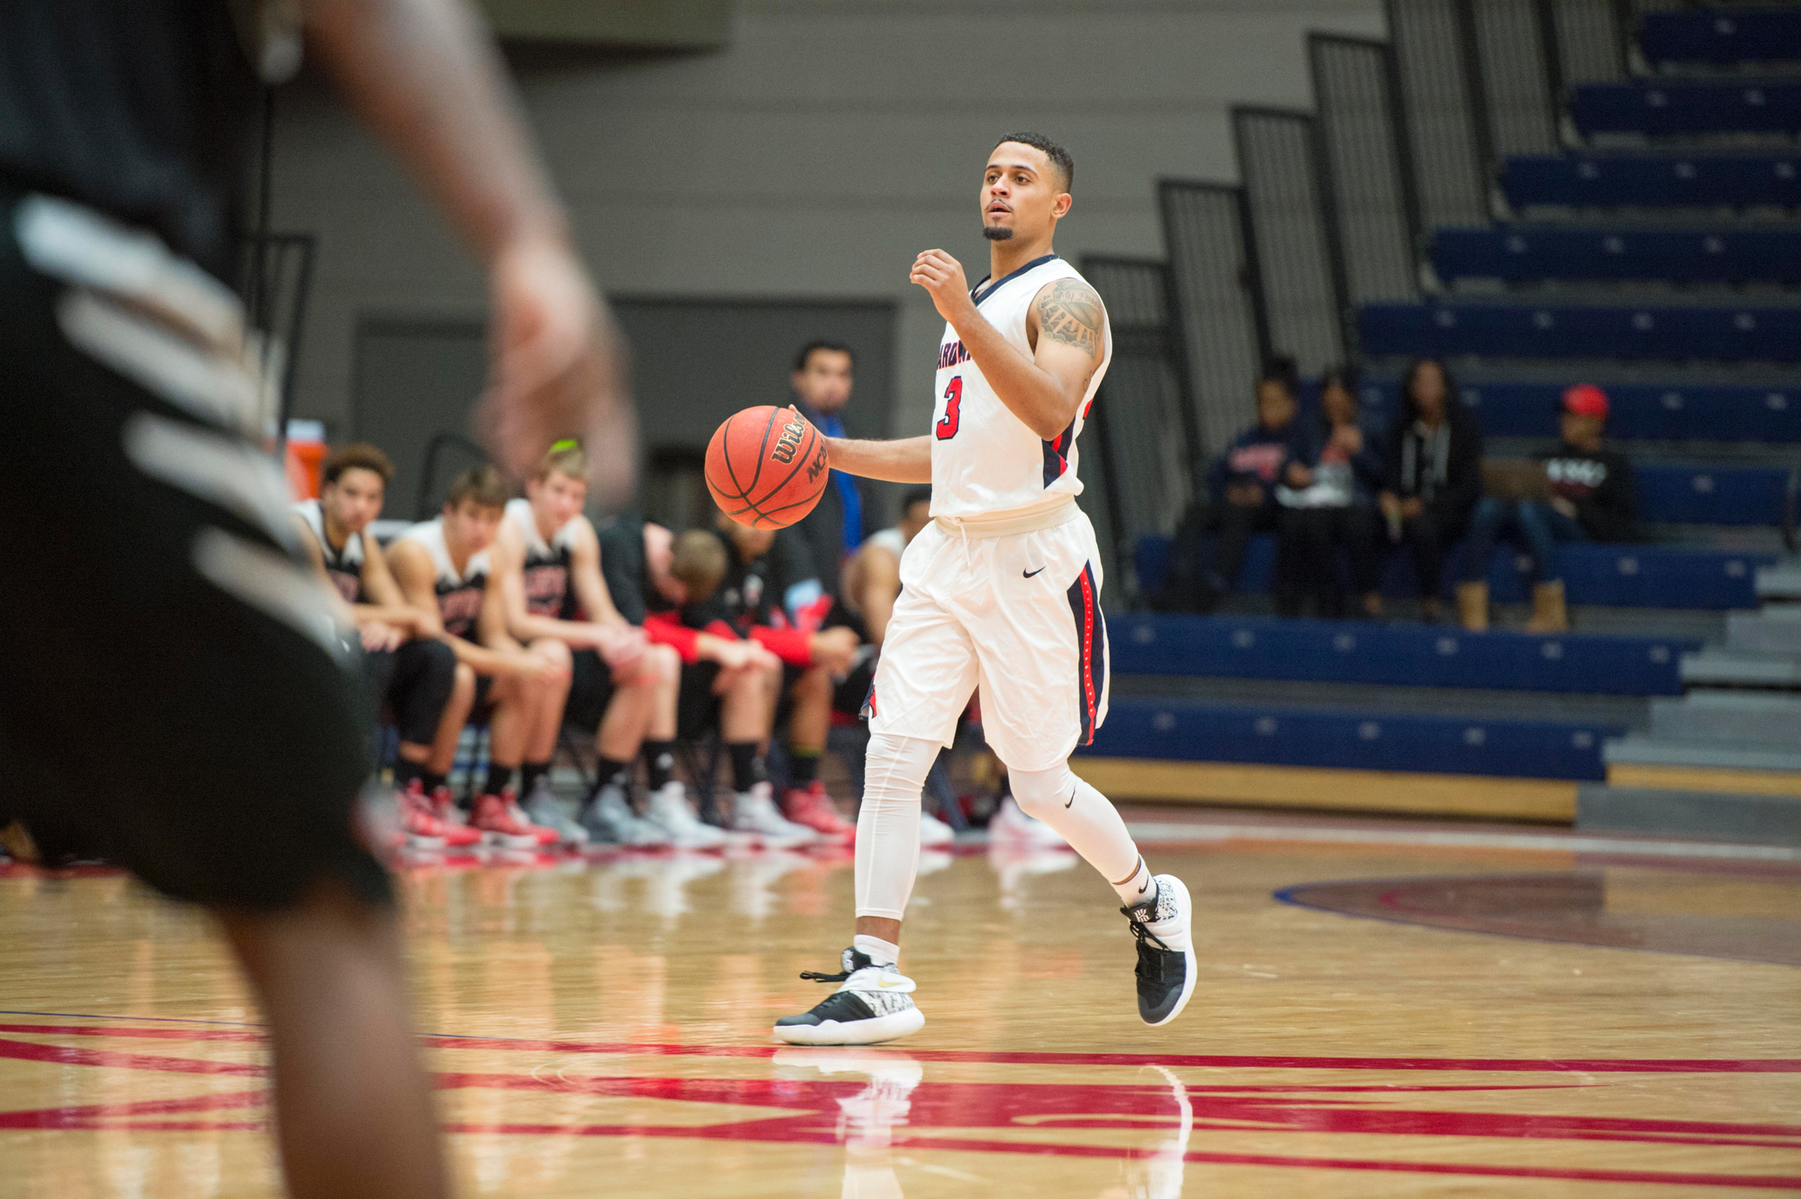 Cardinals Stay in GLIAC Tourney Contention with 81-74 Victory over LSSU